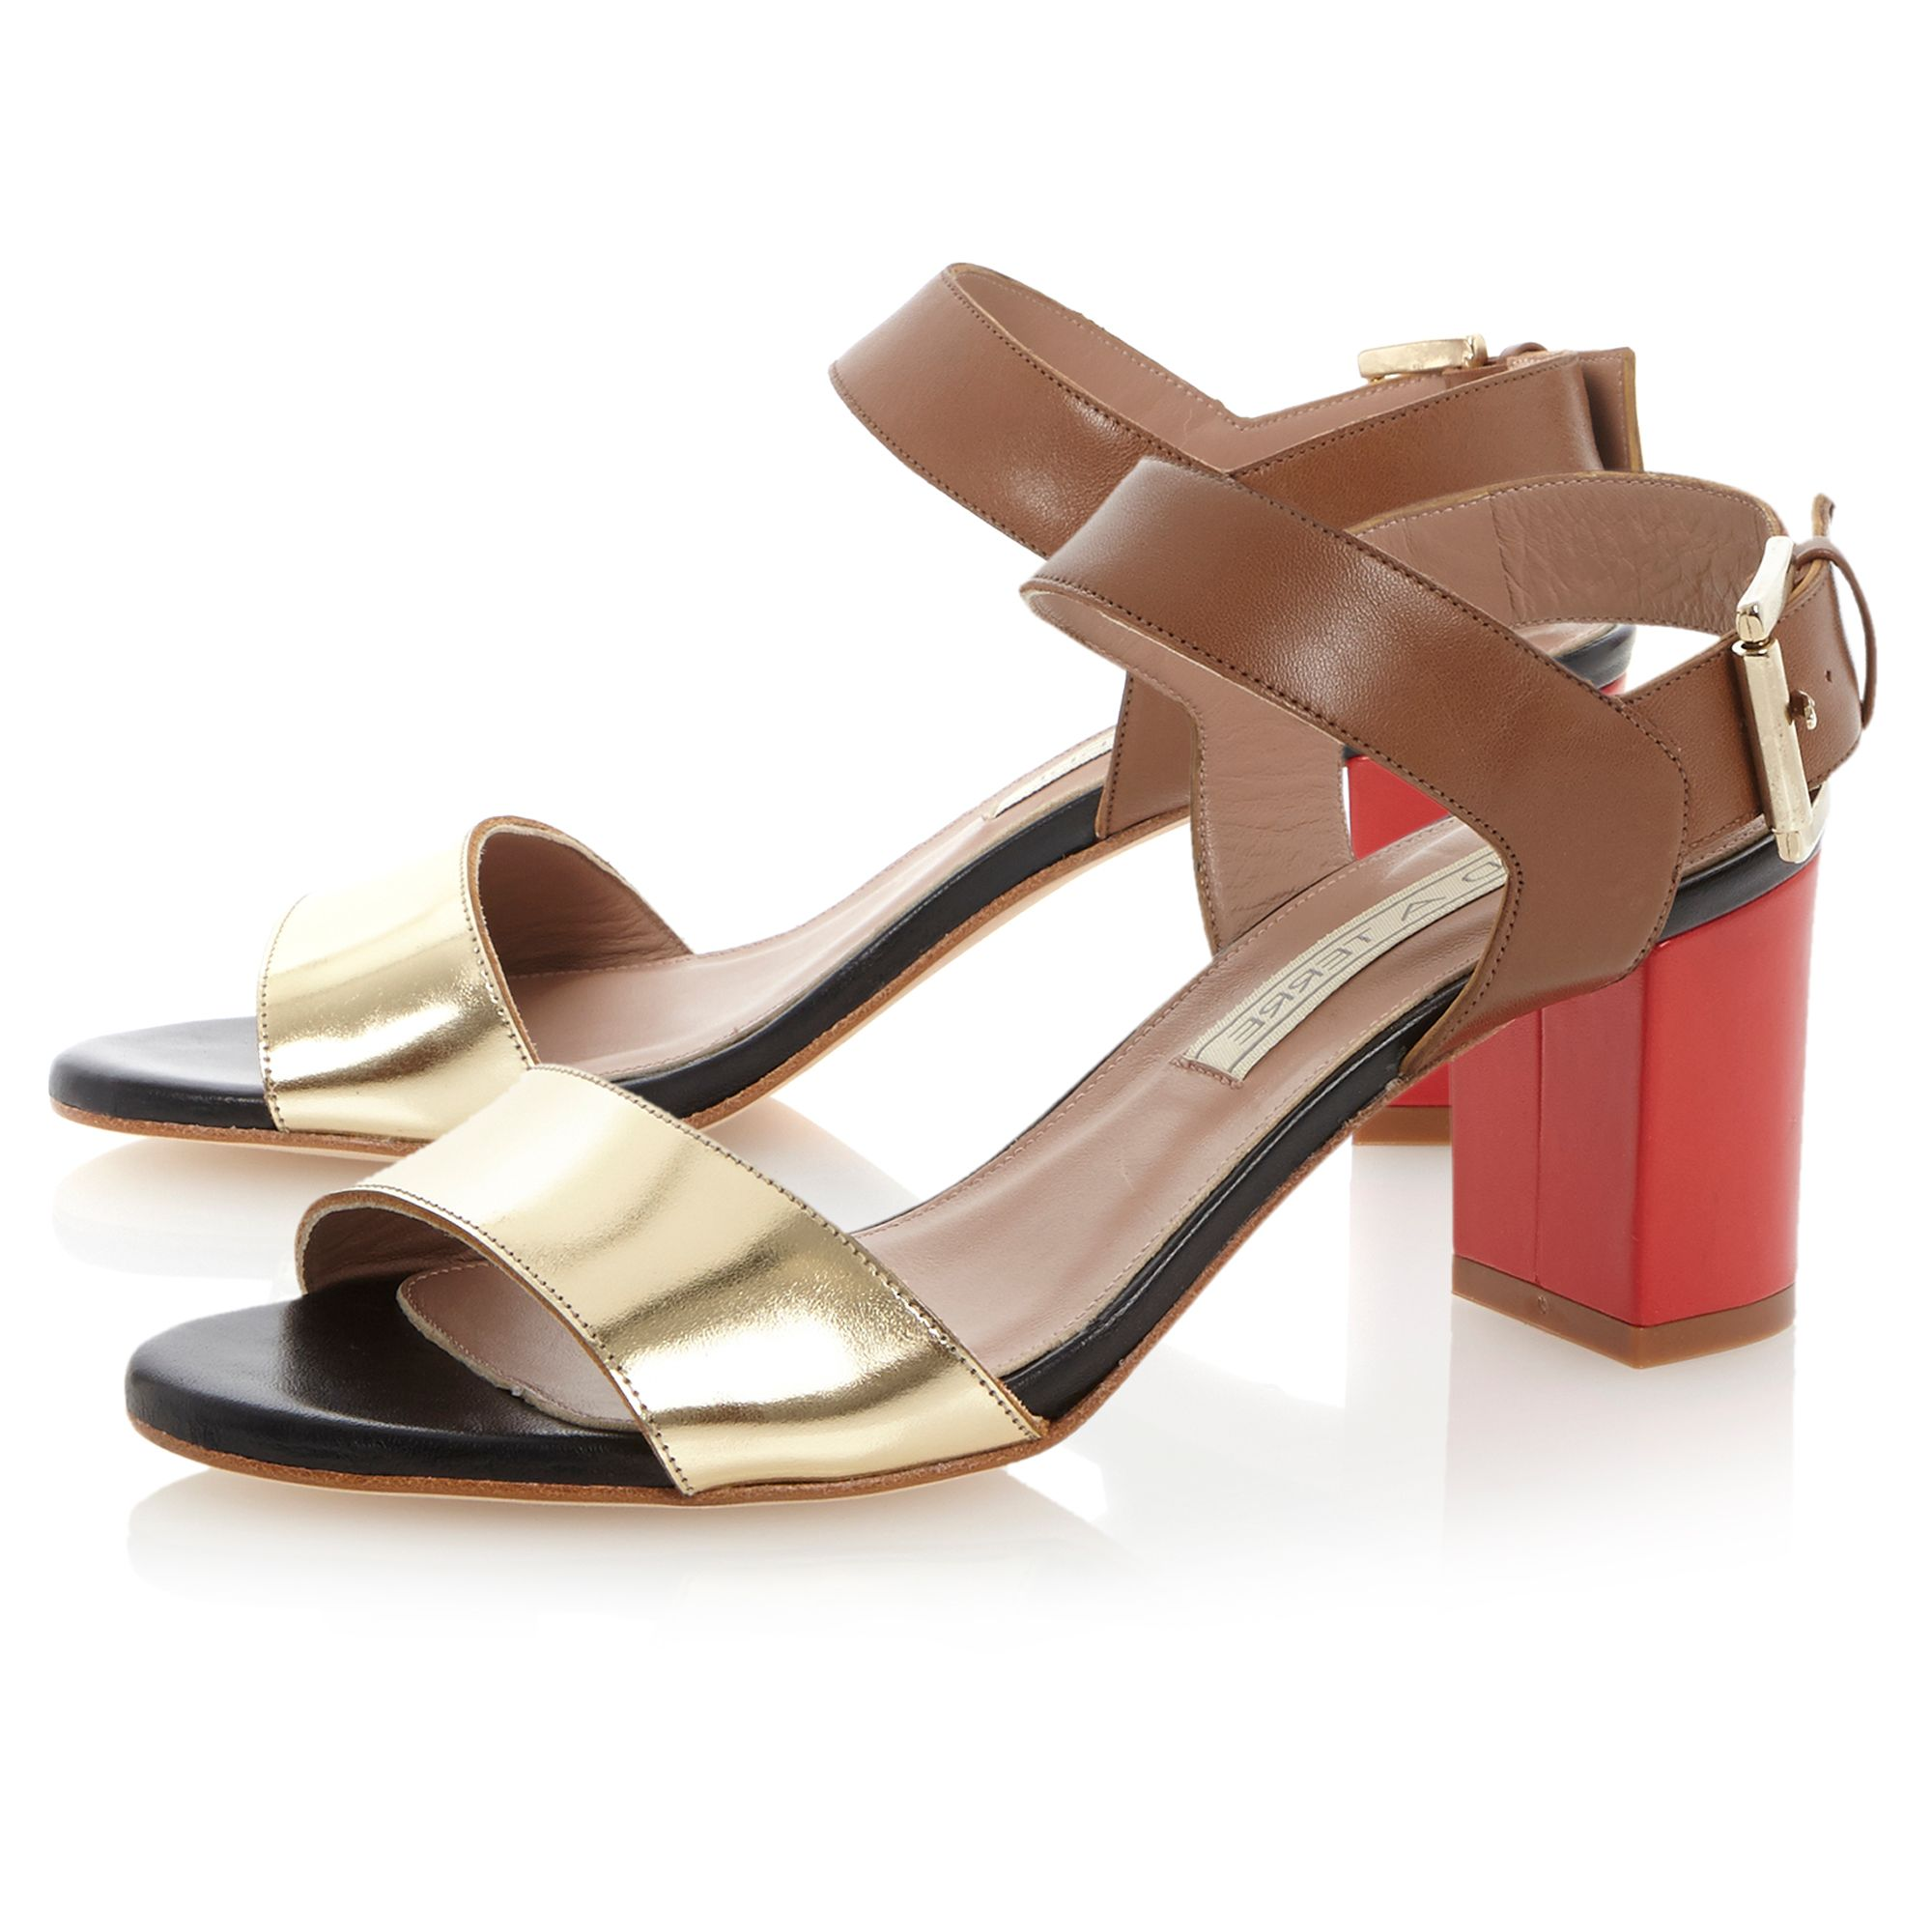 Jeni block heel sandals